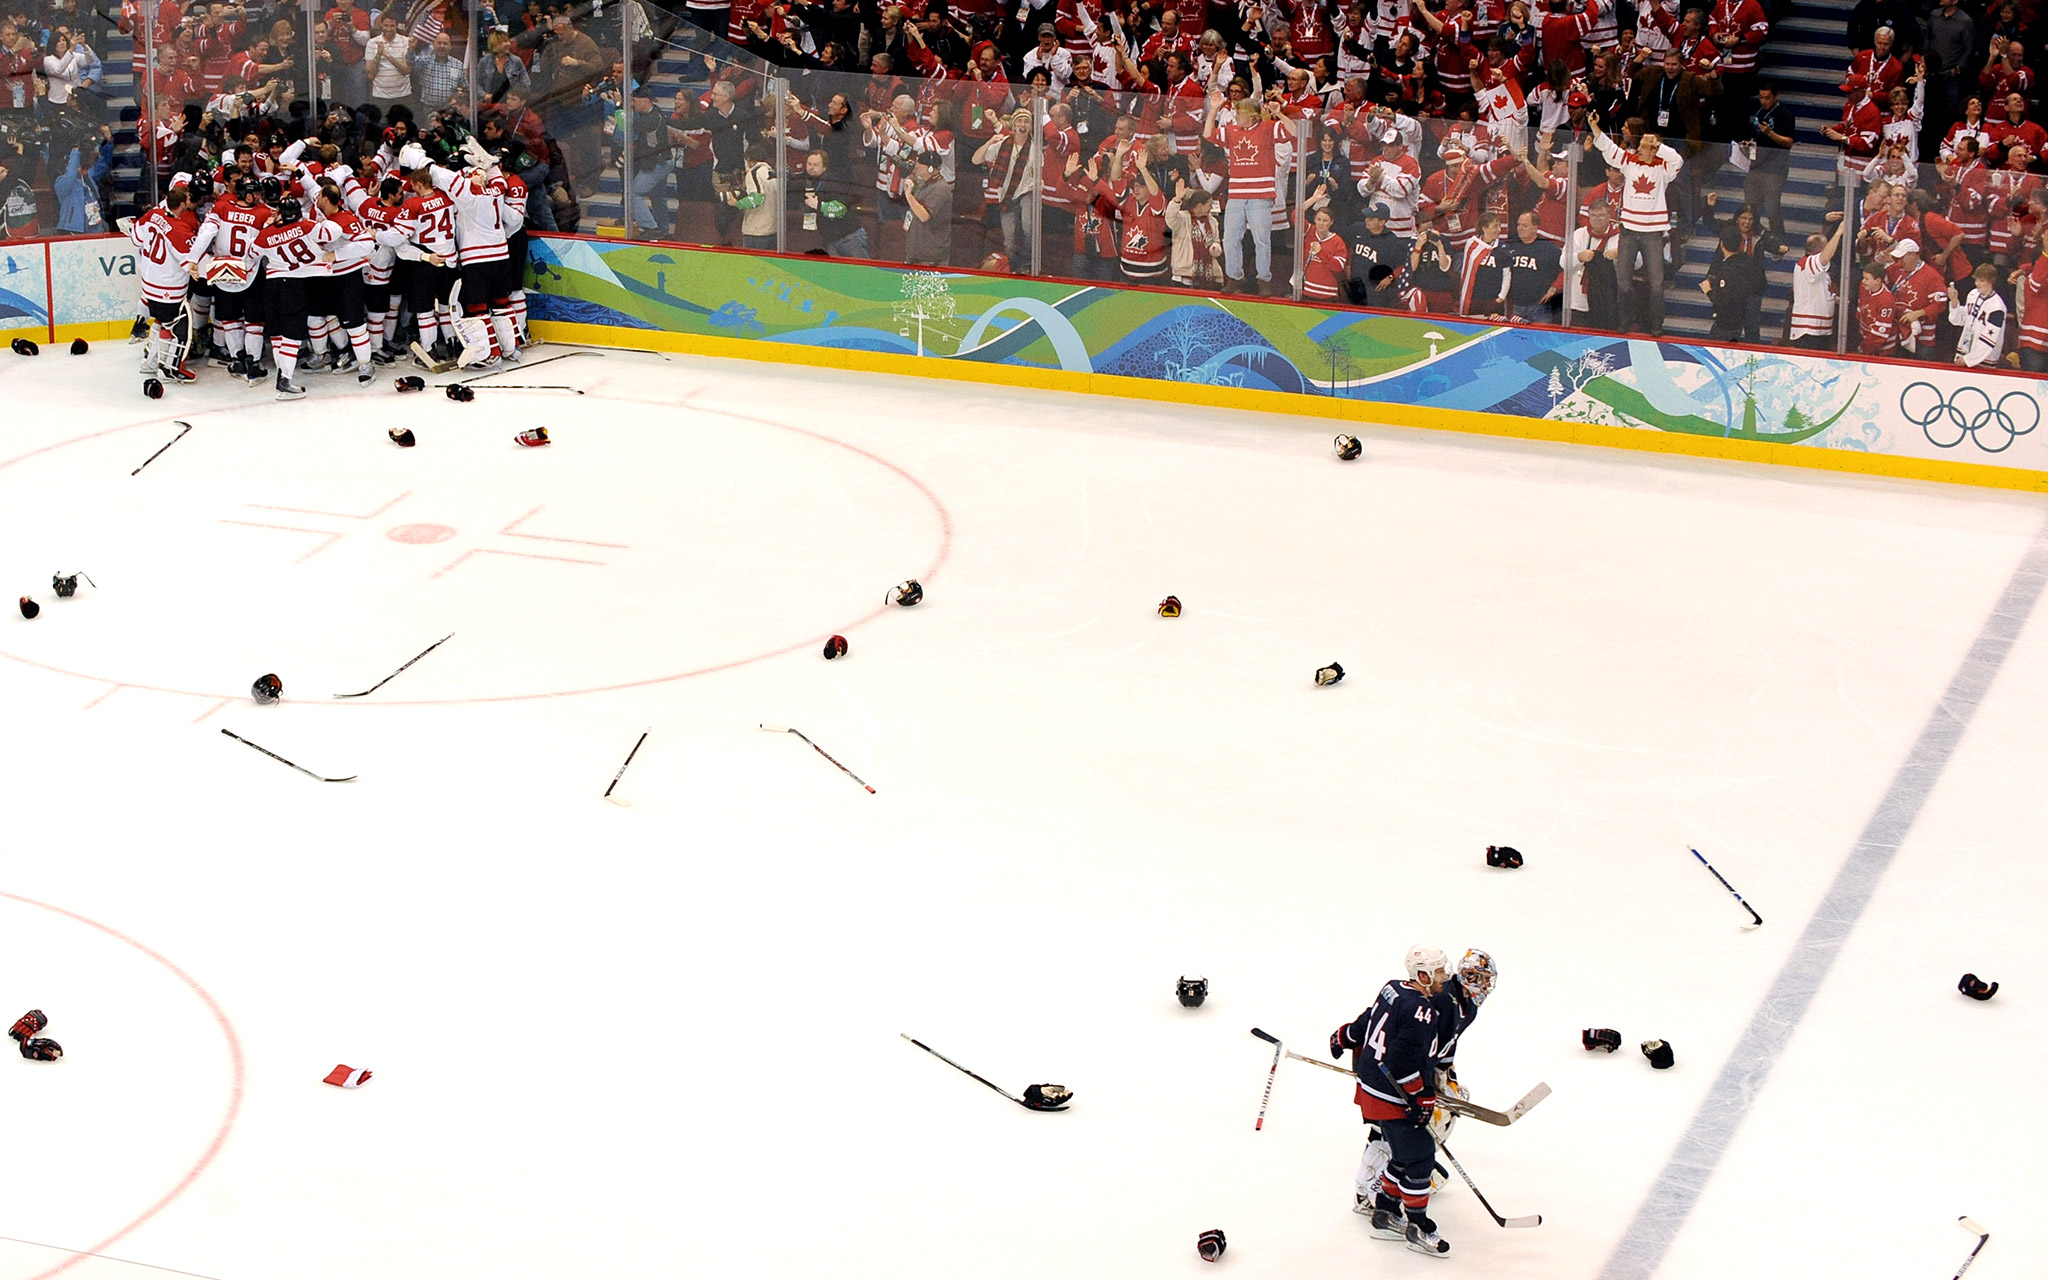 Canada Wins Gold, USA Gets Silver